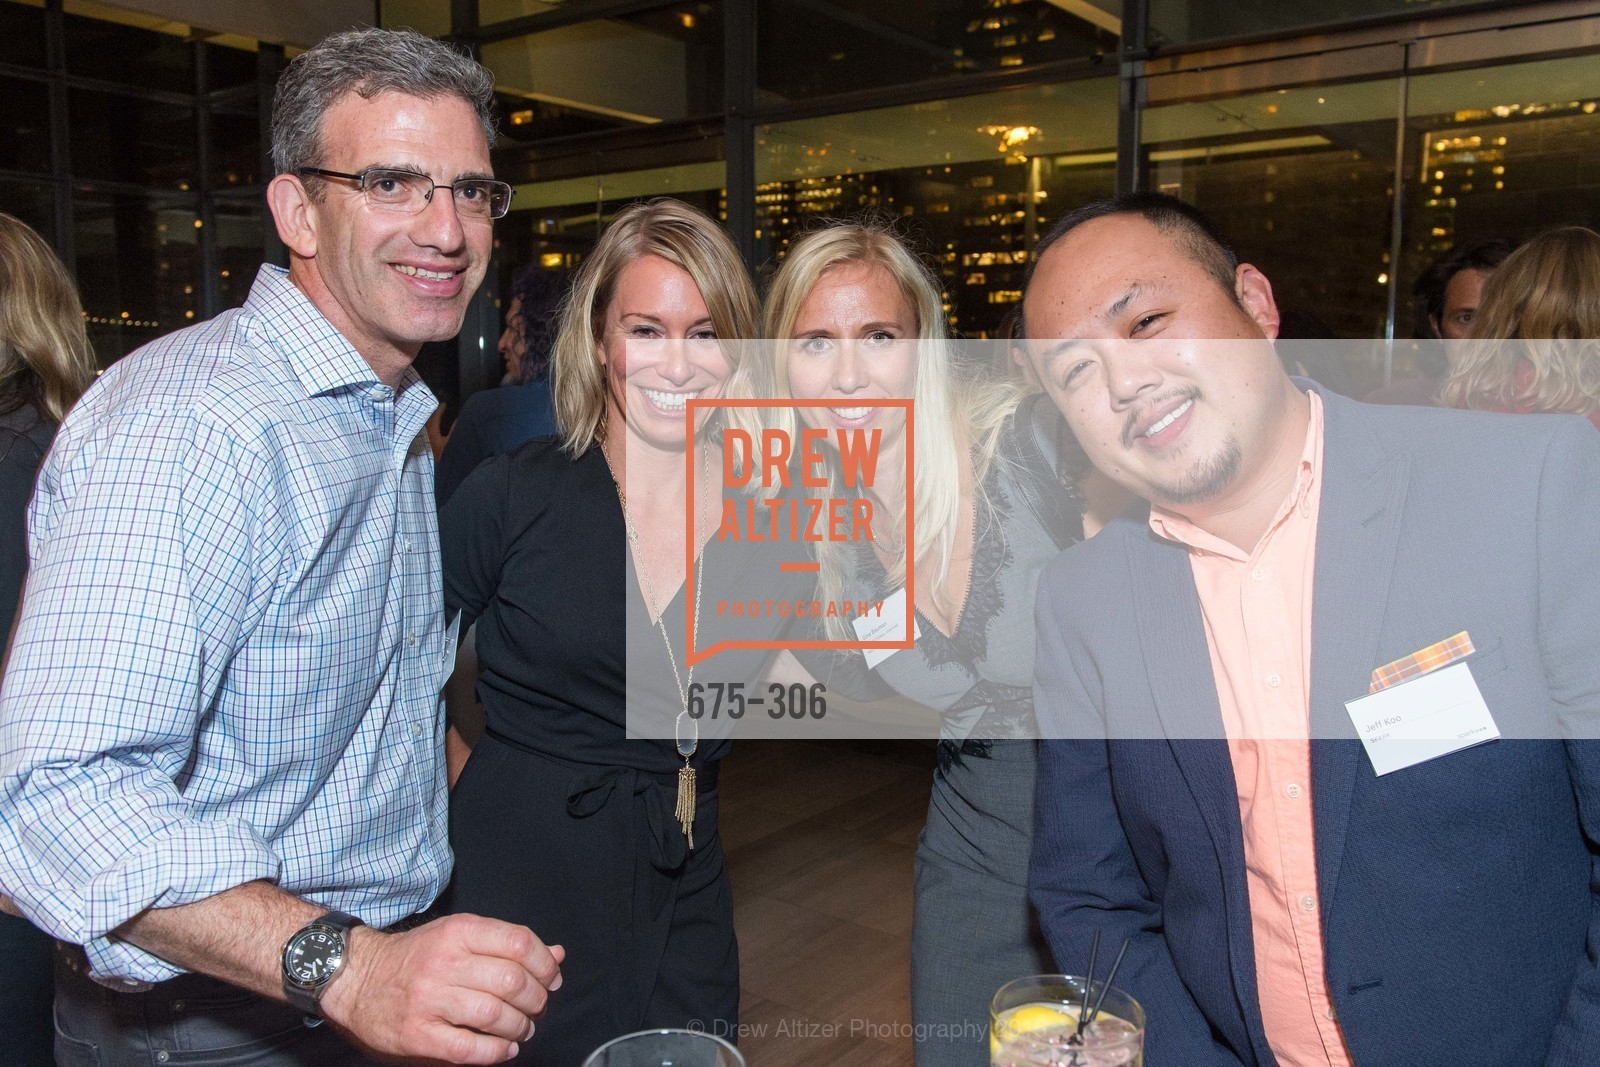 Sylan Tweeney, Mary Magnani, Gina Bauman, Jeffrey Koo, Sparkpr's Annual Rooftop Soirée, The Battery Penthouse, September 22nd, 2015,Drew Altizer, Drew Altizer Photography, full-service agency, private events, San Francisco photographer, photographer california